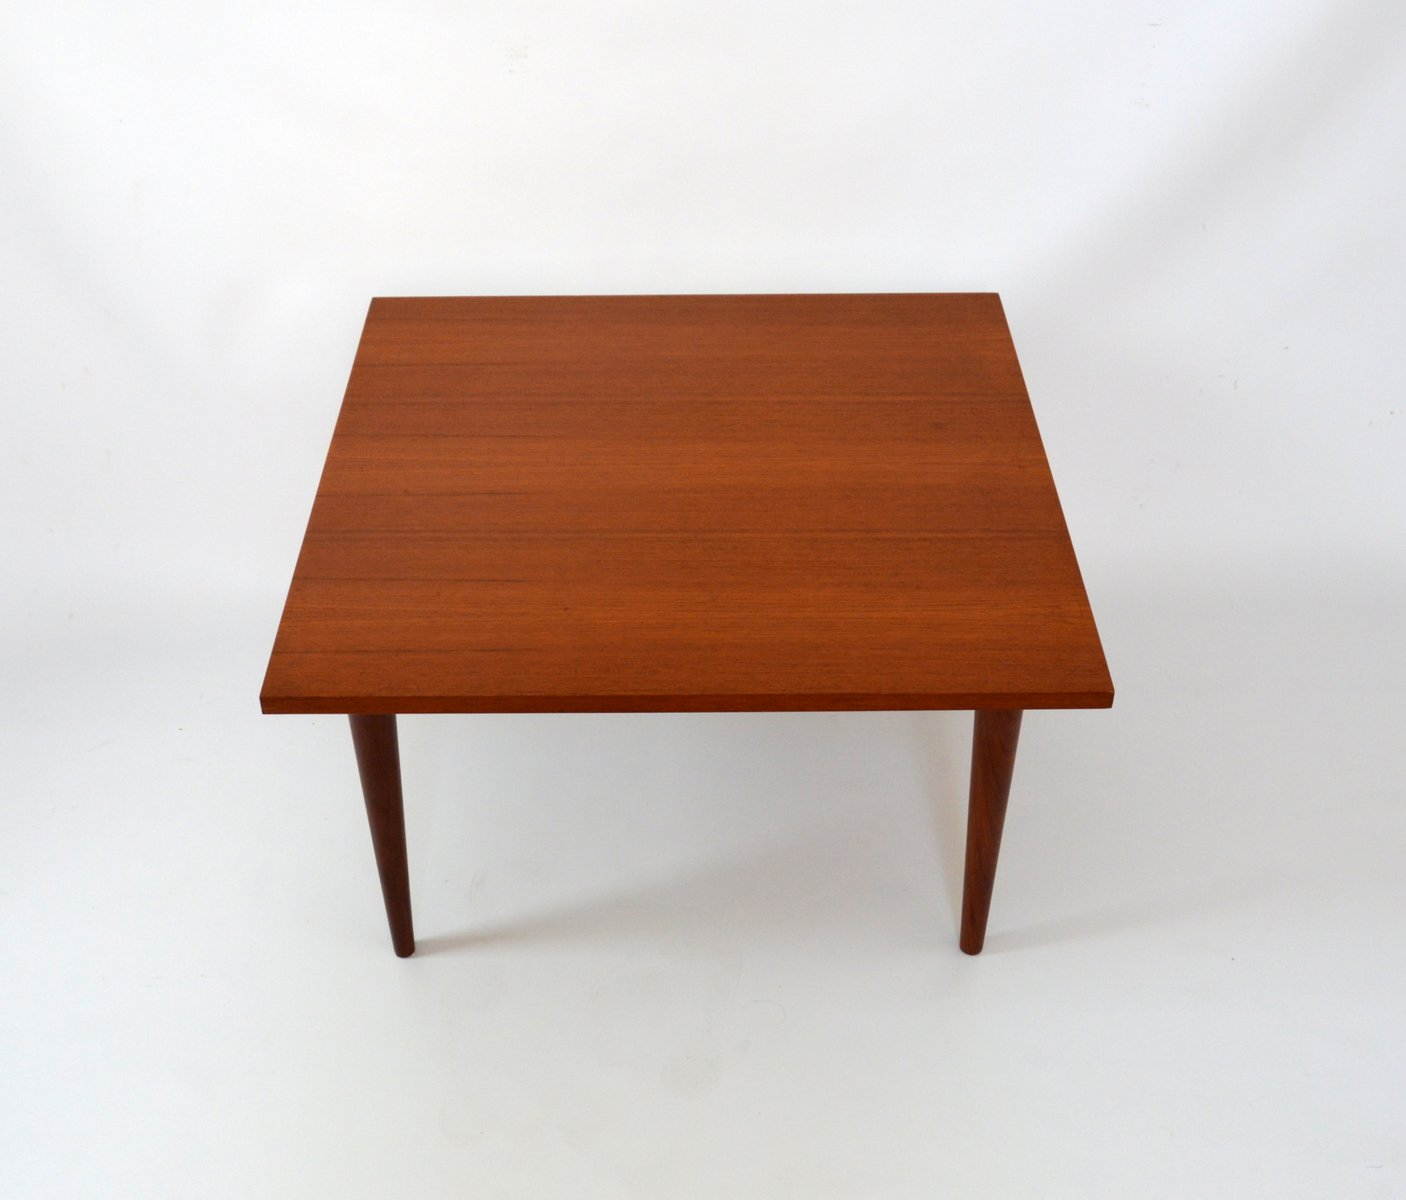 Vintage Swedish Teak Coffee Table 1970s For Sale At Pamono